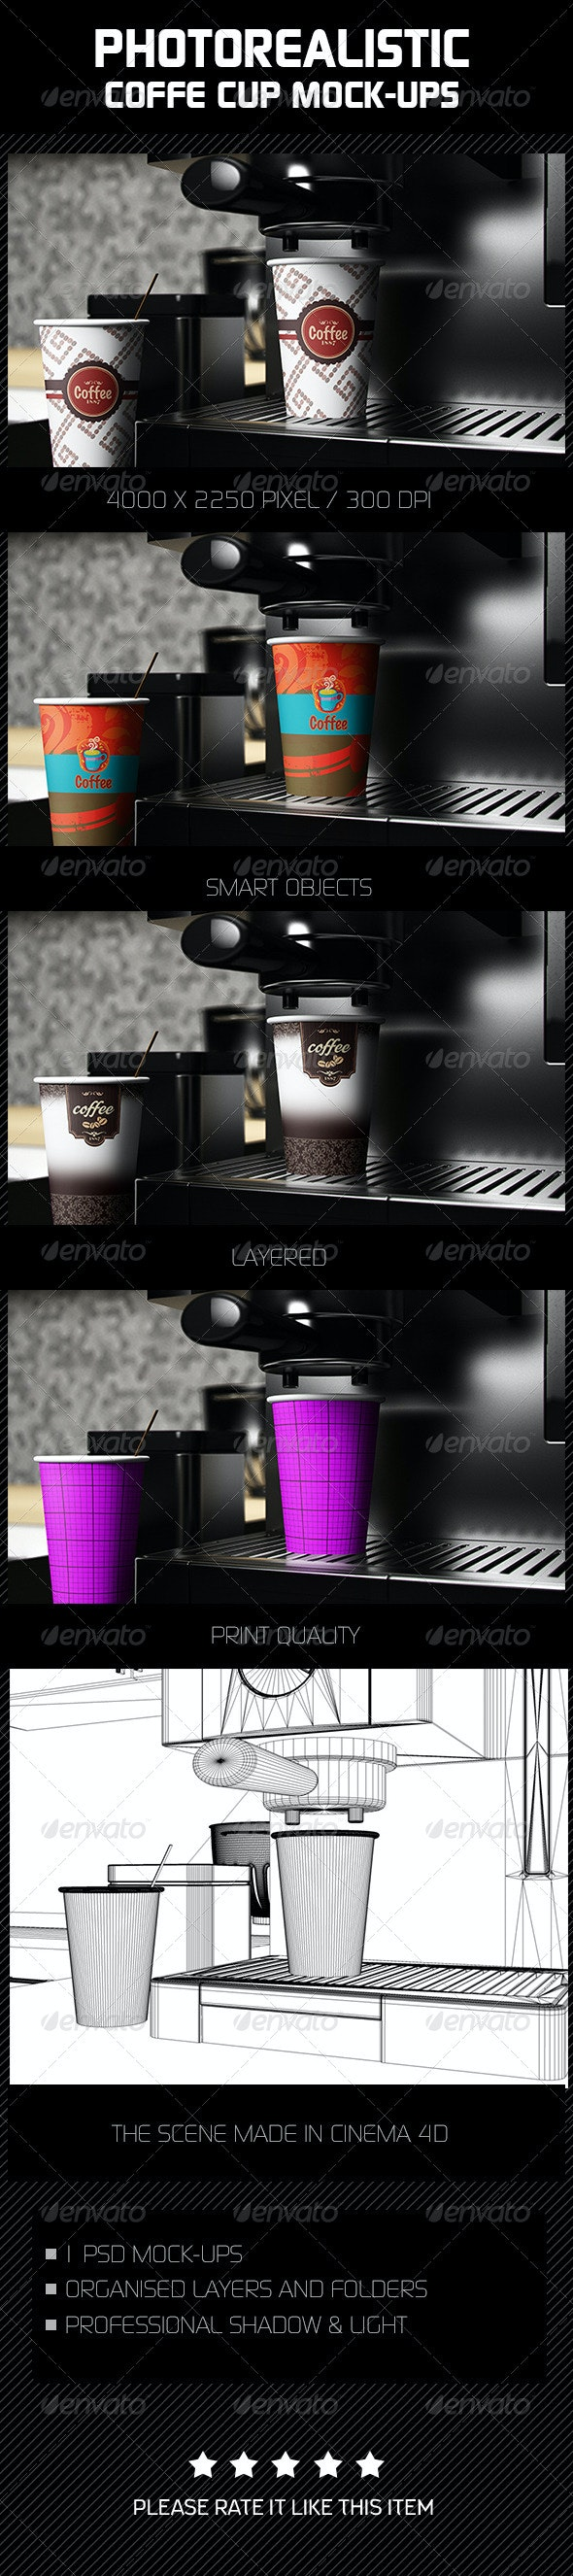 Photorealistic Coffee Cup Mock-Ups - Food and Drink Packaging